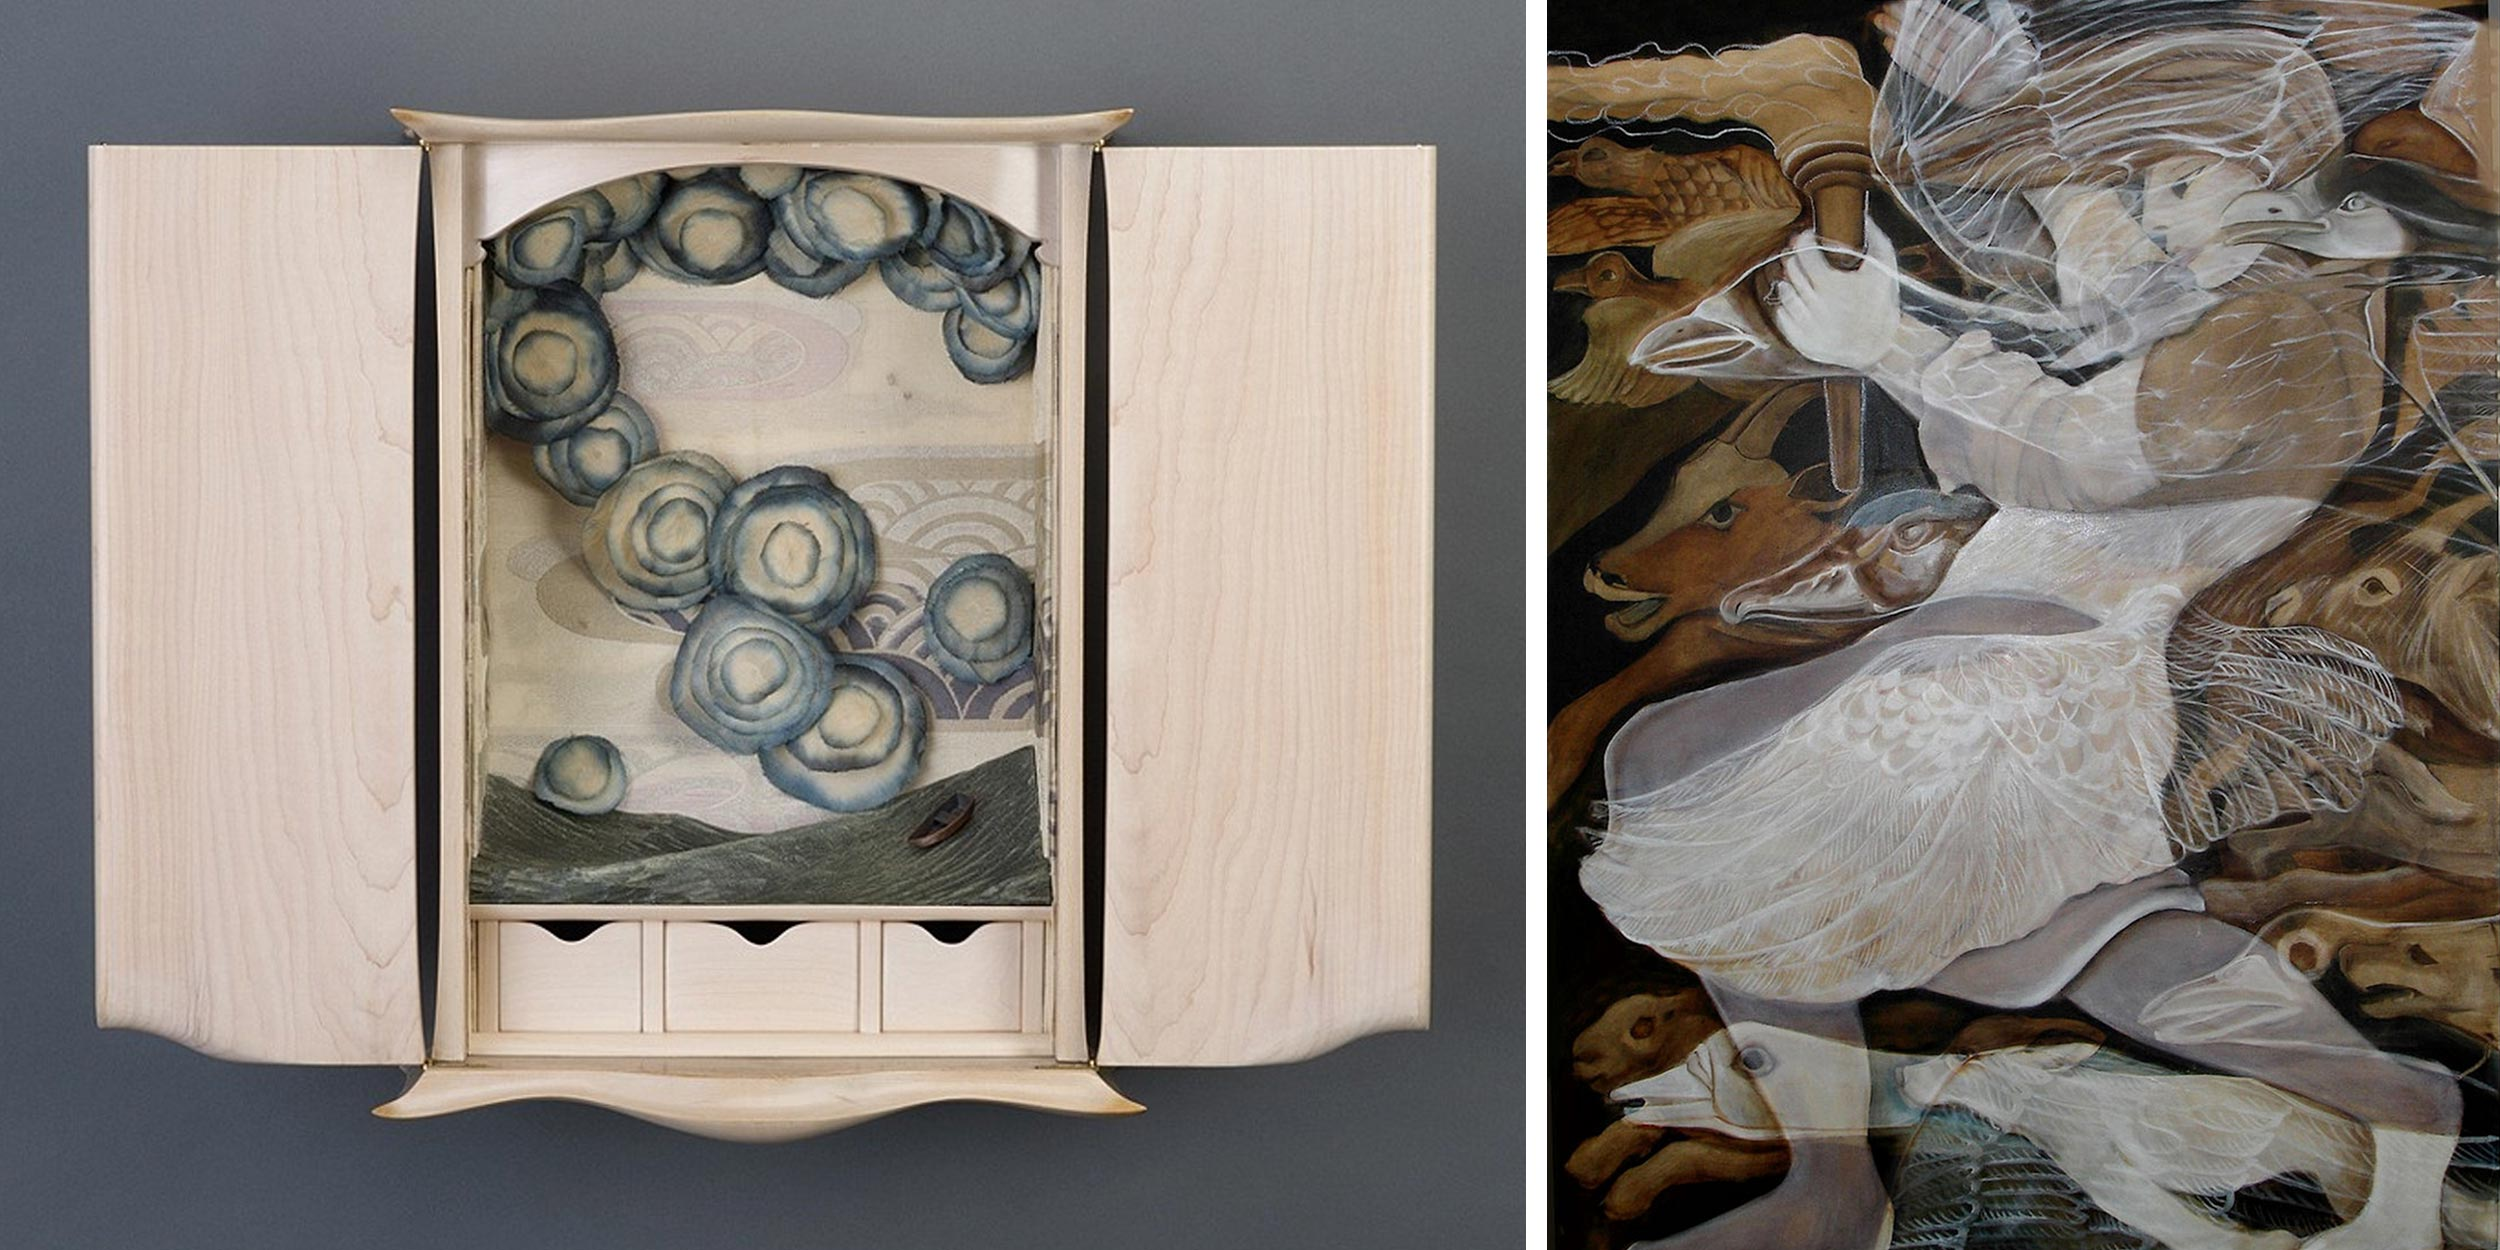 Sarah Martin cabinet and Lea Goldman painting images